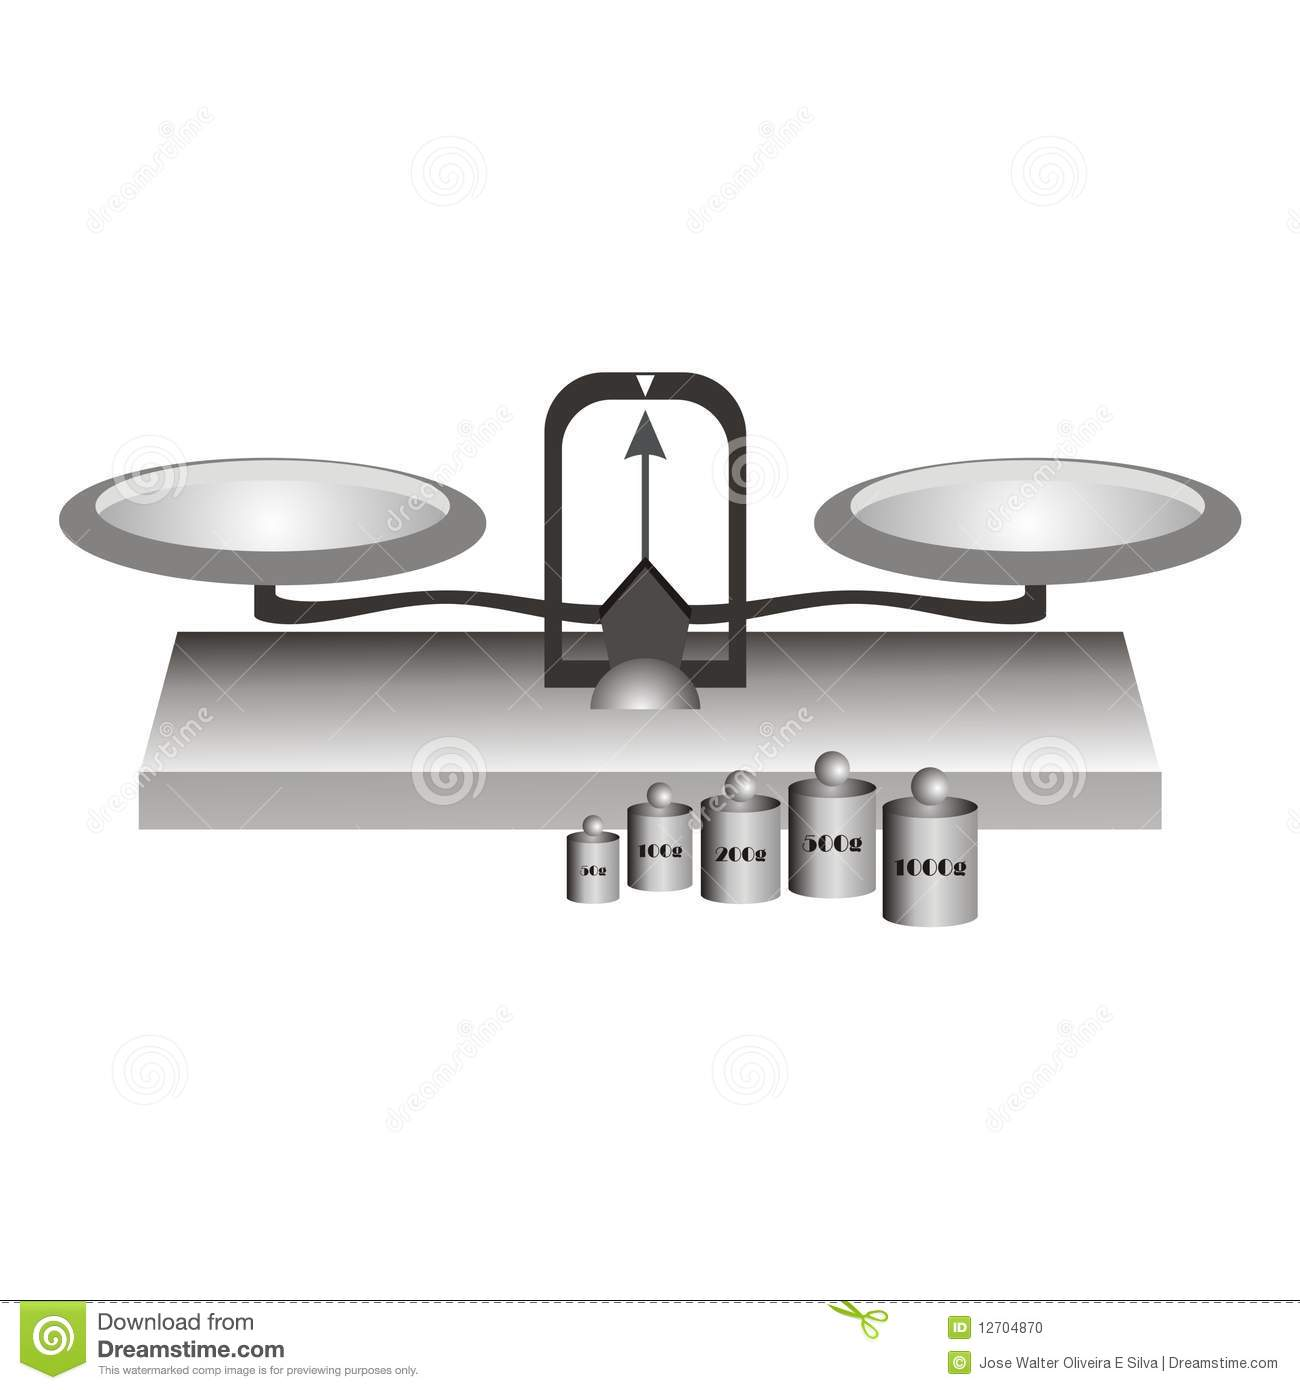 old two pan balance stock photo image 12704870 clipart for embroidery digitizing Button Art